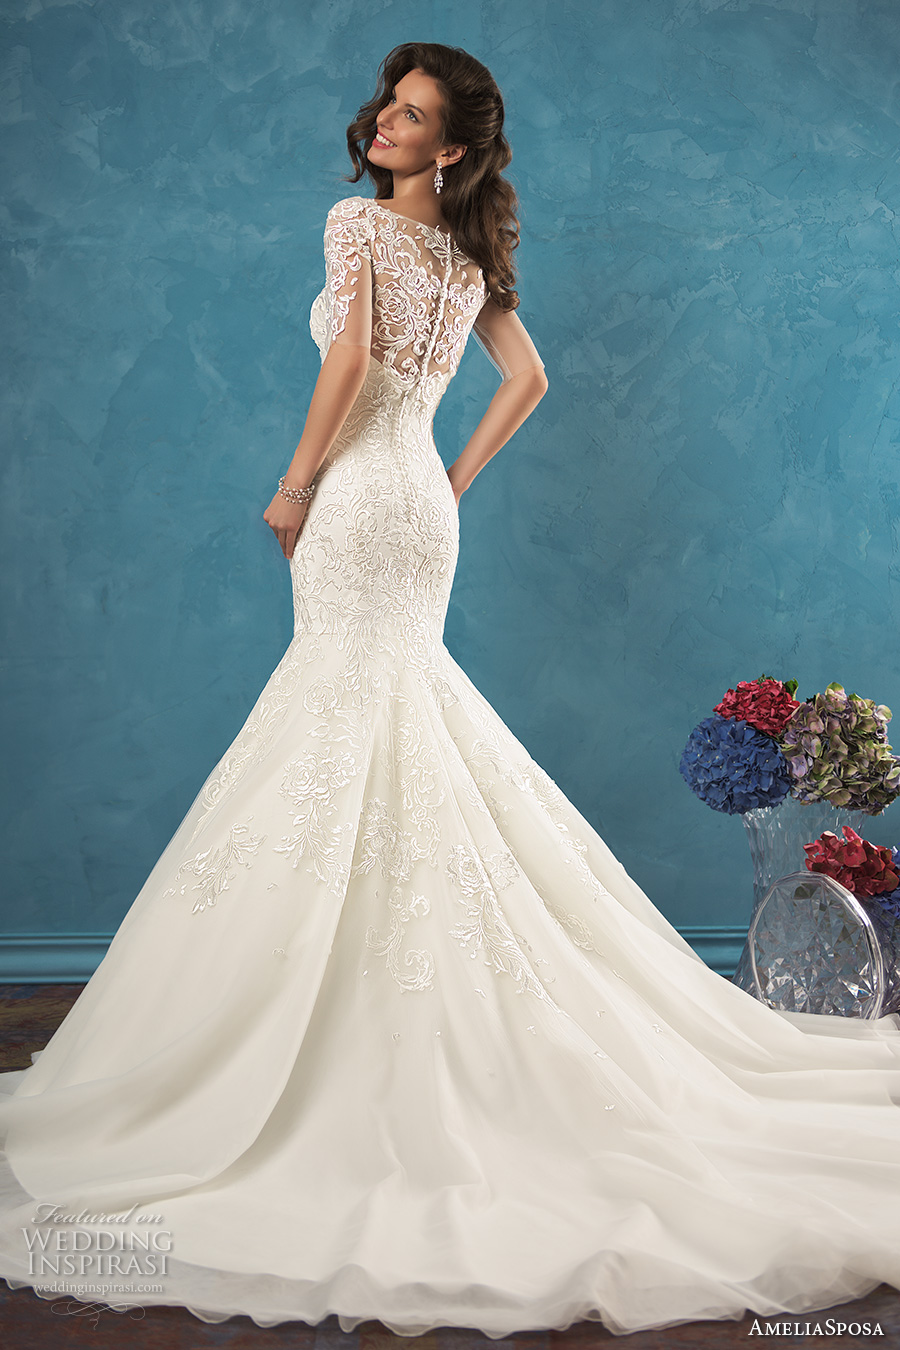 Stunning Beautiful Elegant Wedding Dresses Images - Styles & Ideas ...